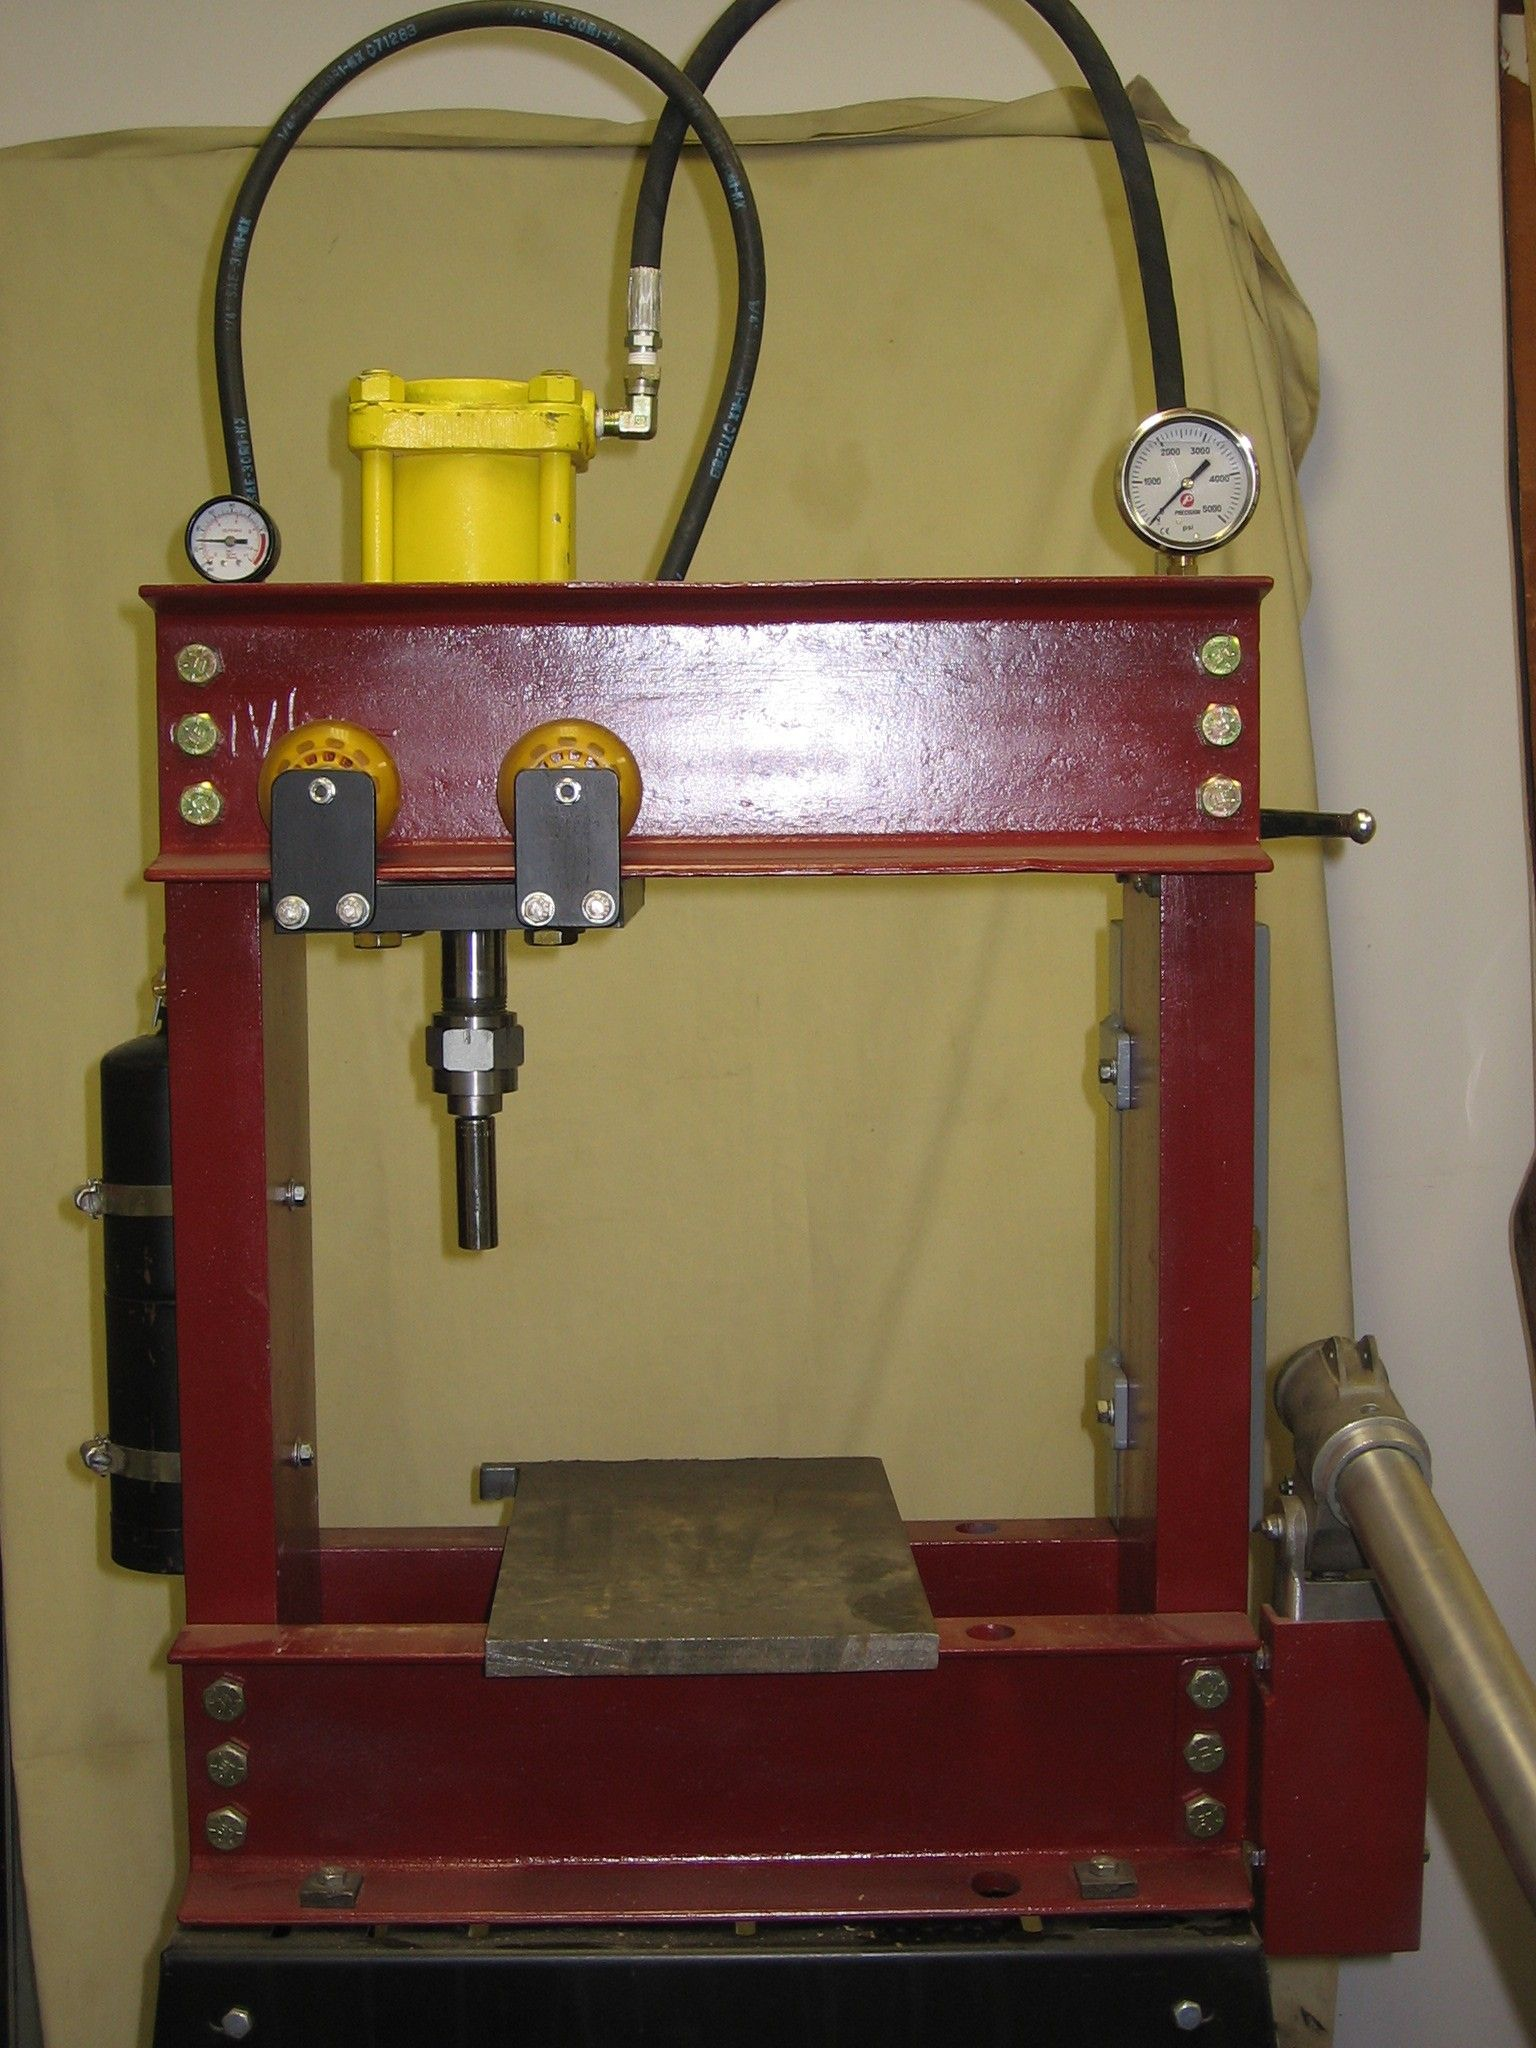 Hydraulic Press By Ed Hollingsworth Homemade Hydraulic Press Powered By A Hydraulic Cylinder And A Hand Pump Fram Garage Tools Homemade Tools Welding Tools